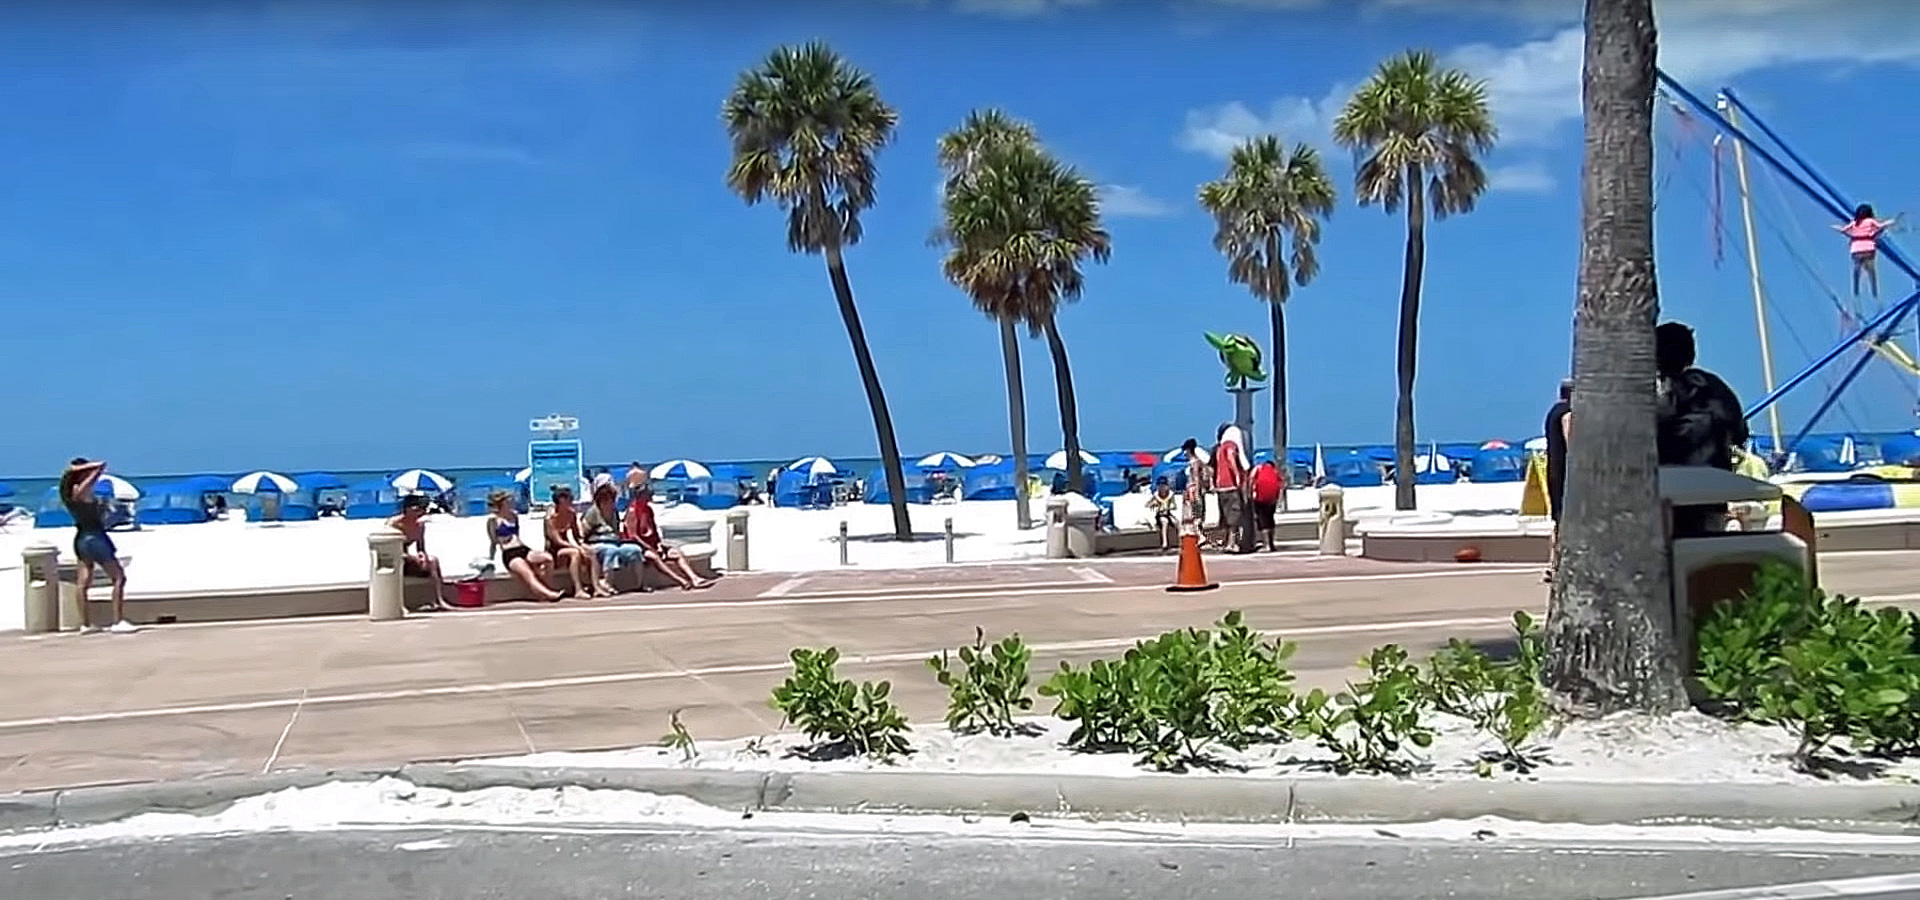 clearwater-beach-florida-lifestyle